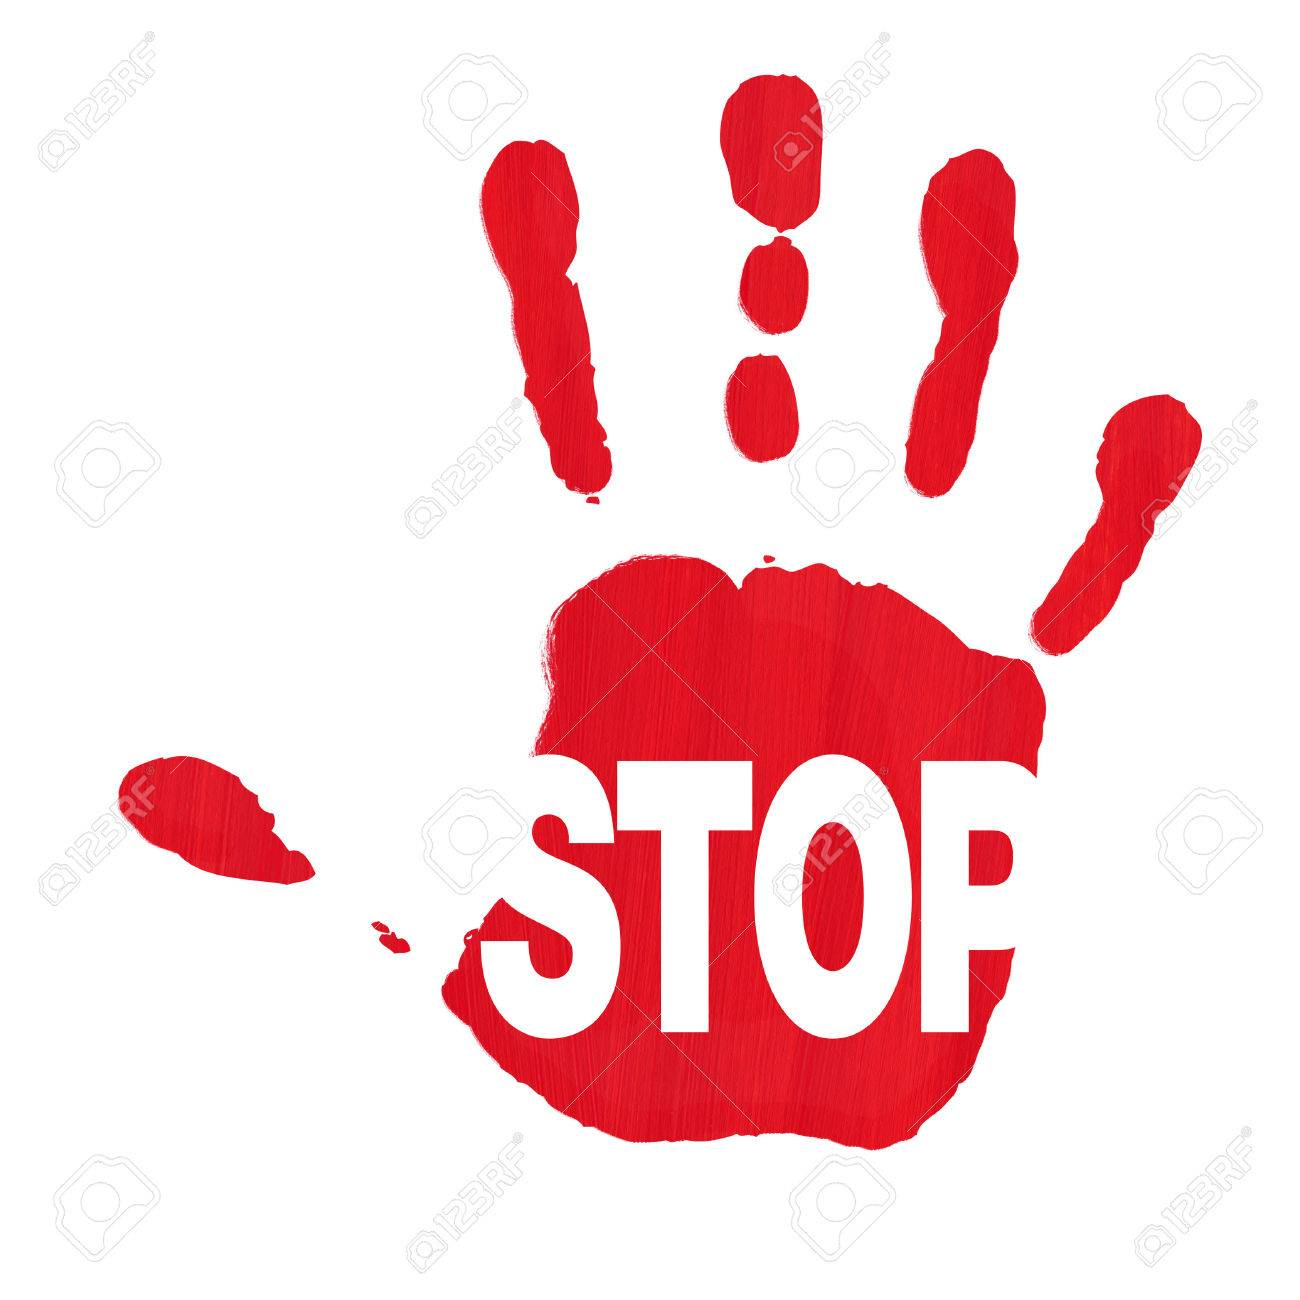 Red hand print showing STOP sign against racism and sexism Stock Photo - 39842413